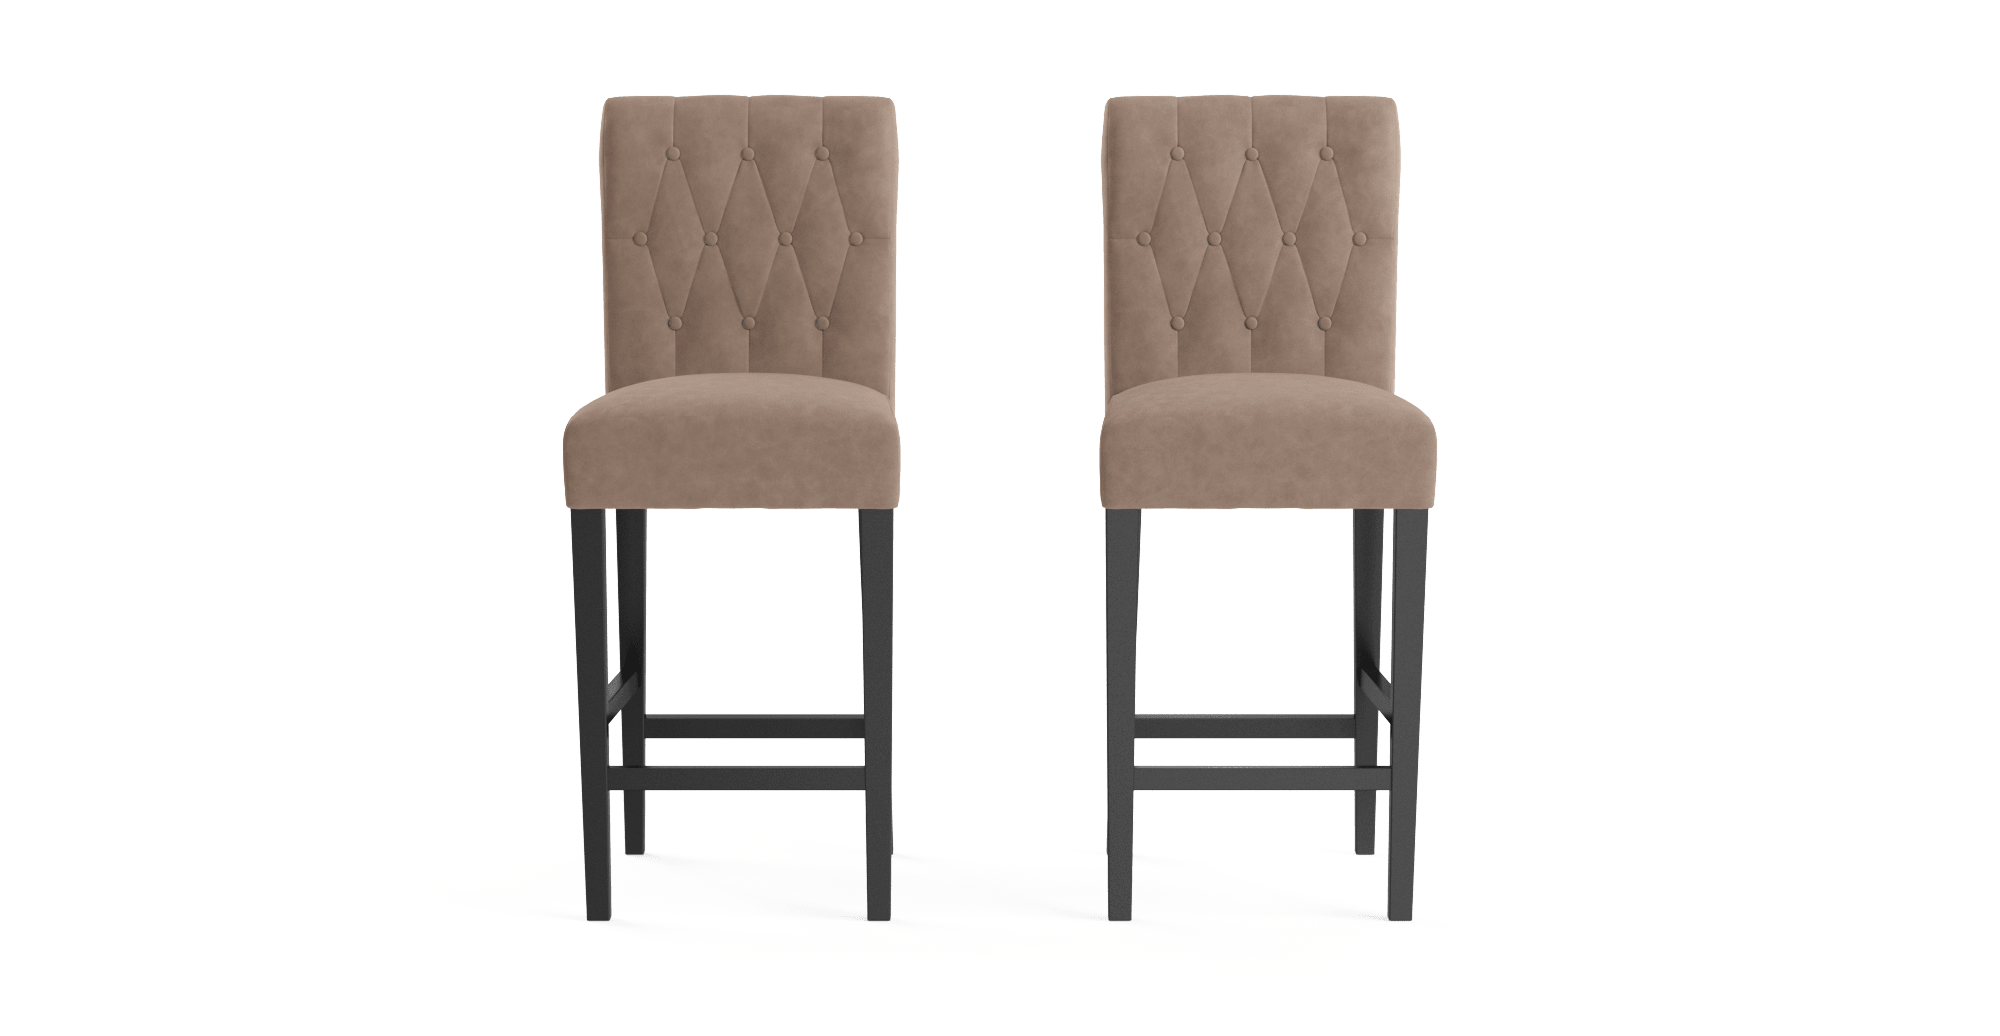 leather walmart brown com ip roby stool set bar of backless stools